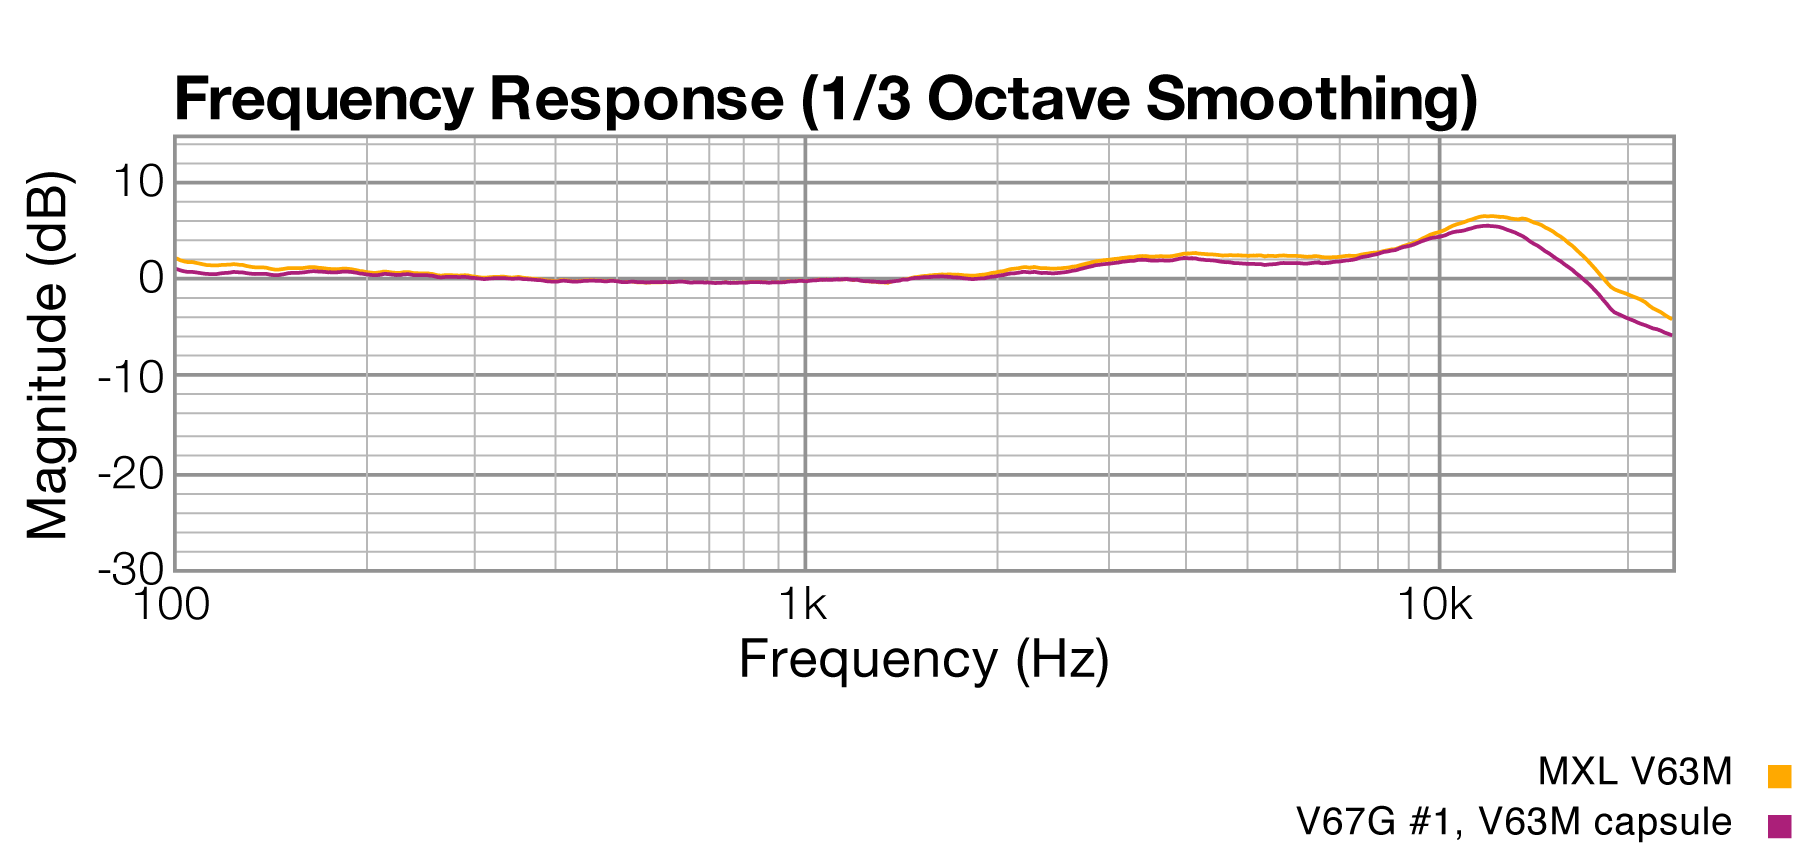 Frequency Response, MXL V63M vs. V67G, same capsule